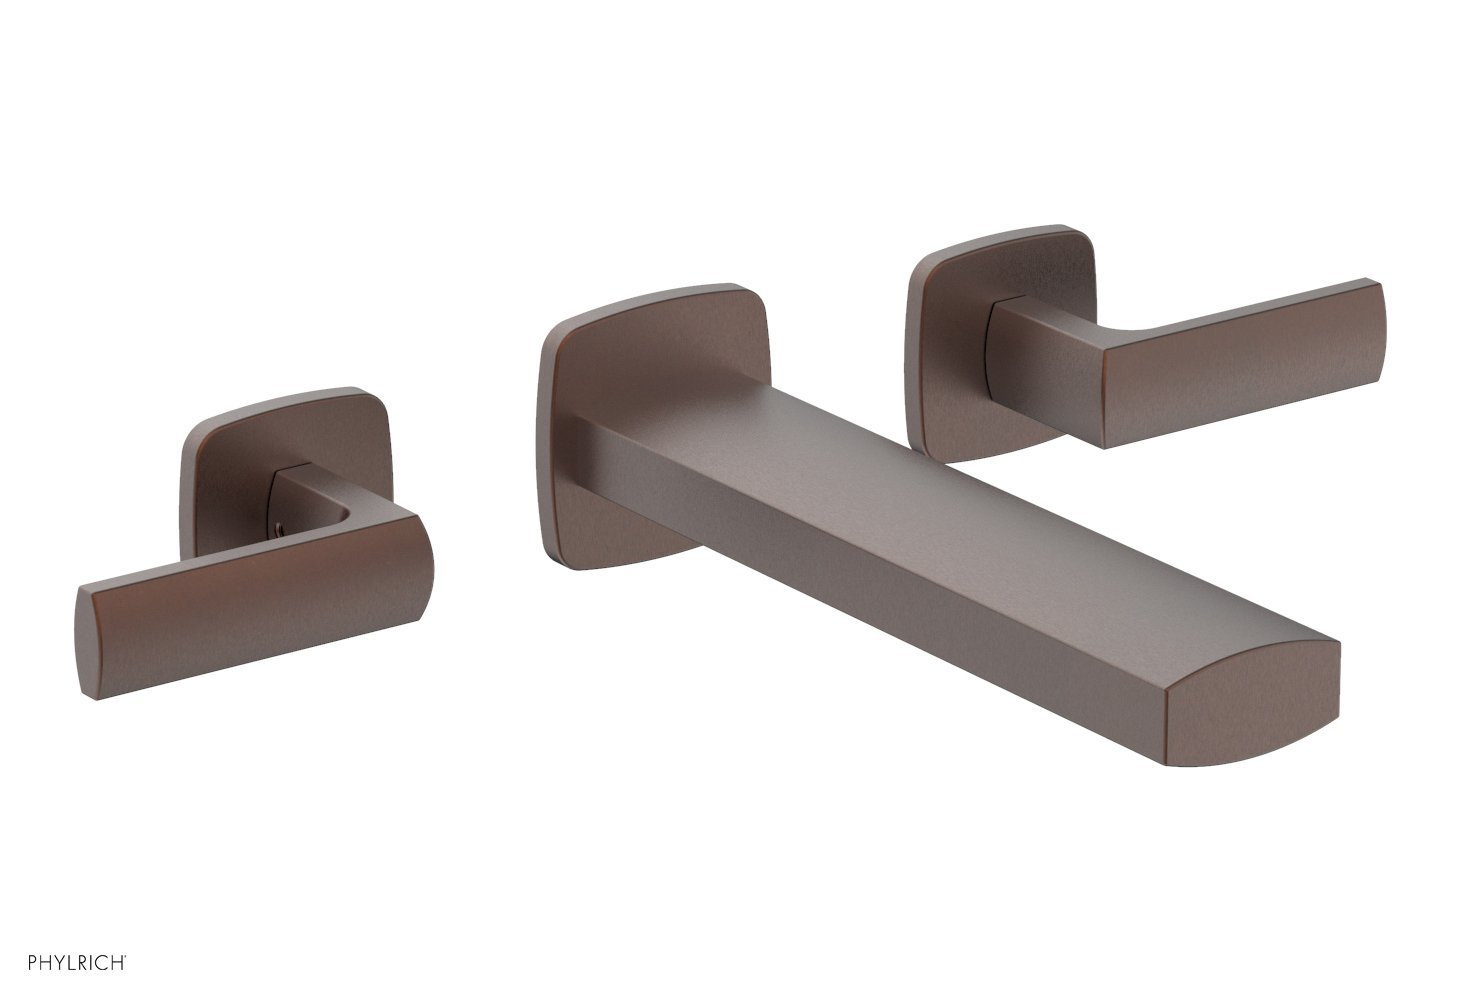 Phylrich 181-57-05W RADI Wall Tub Set - Lever Handles - Weathered Copper